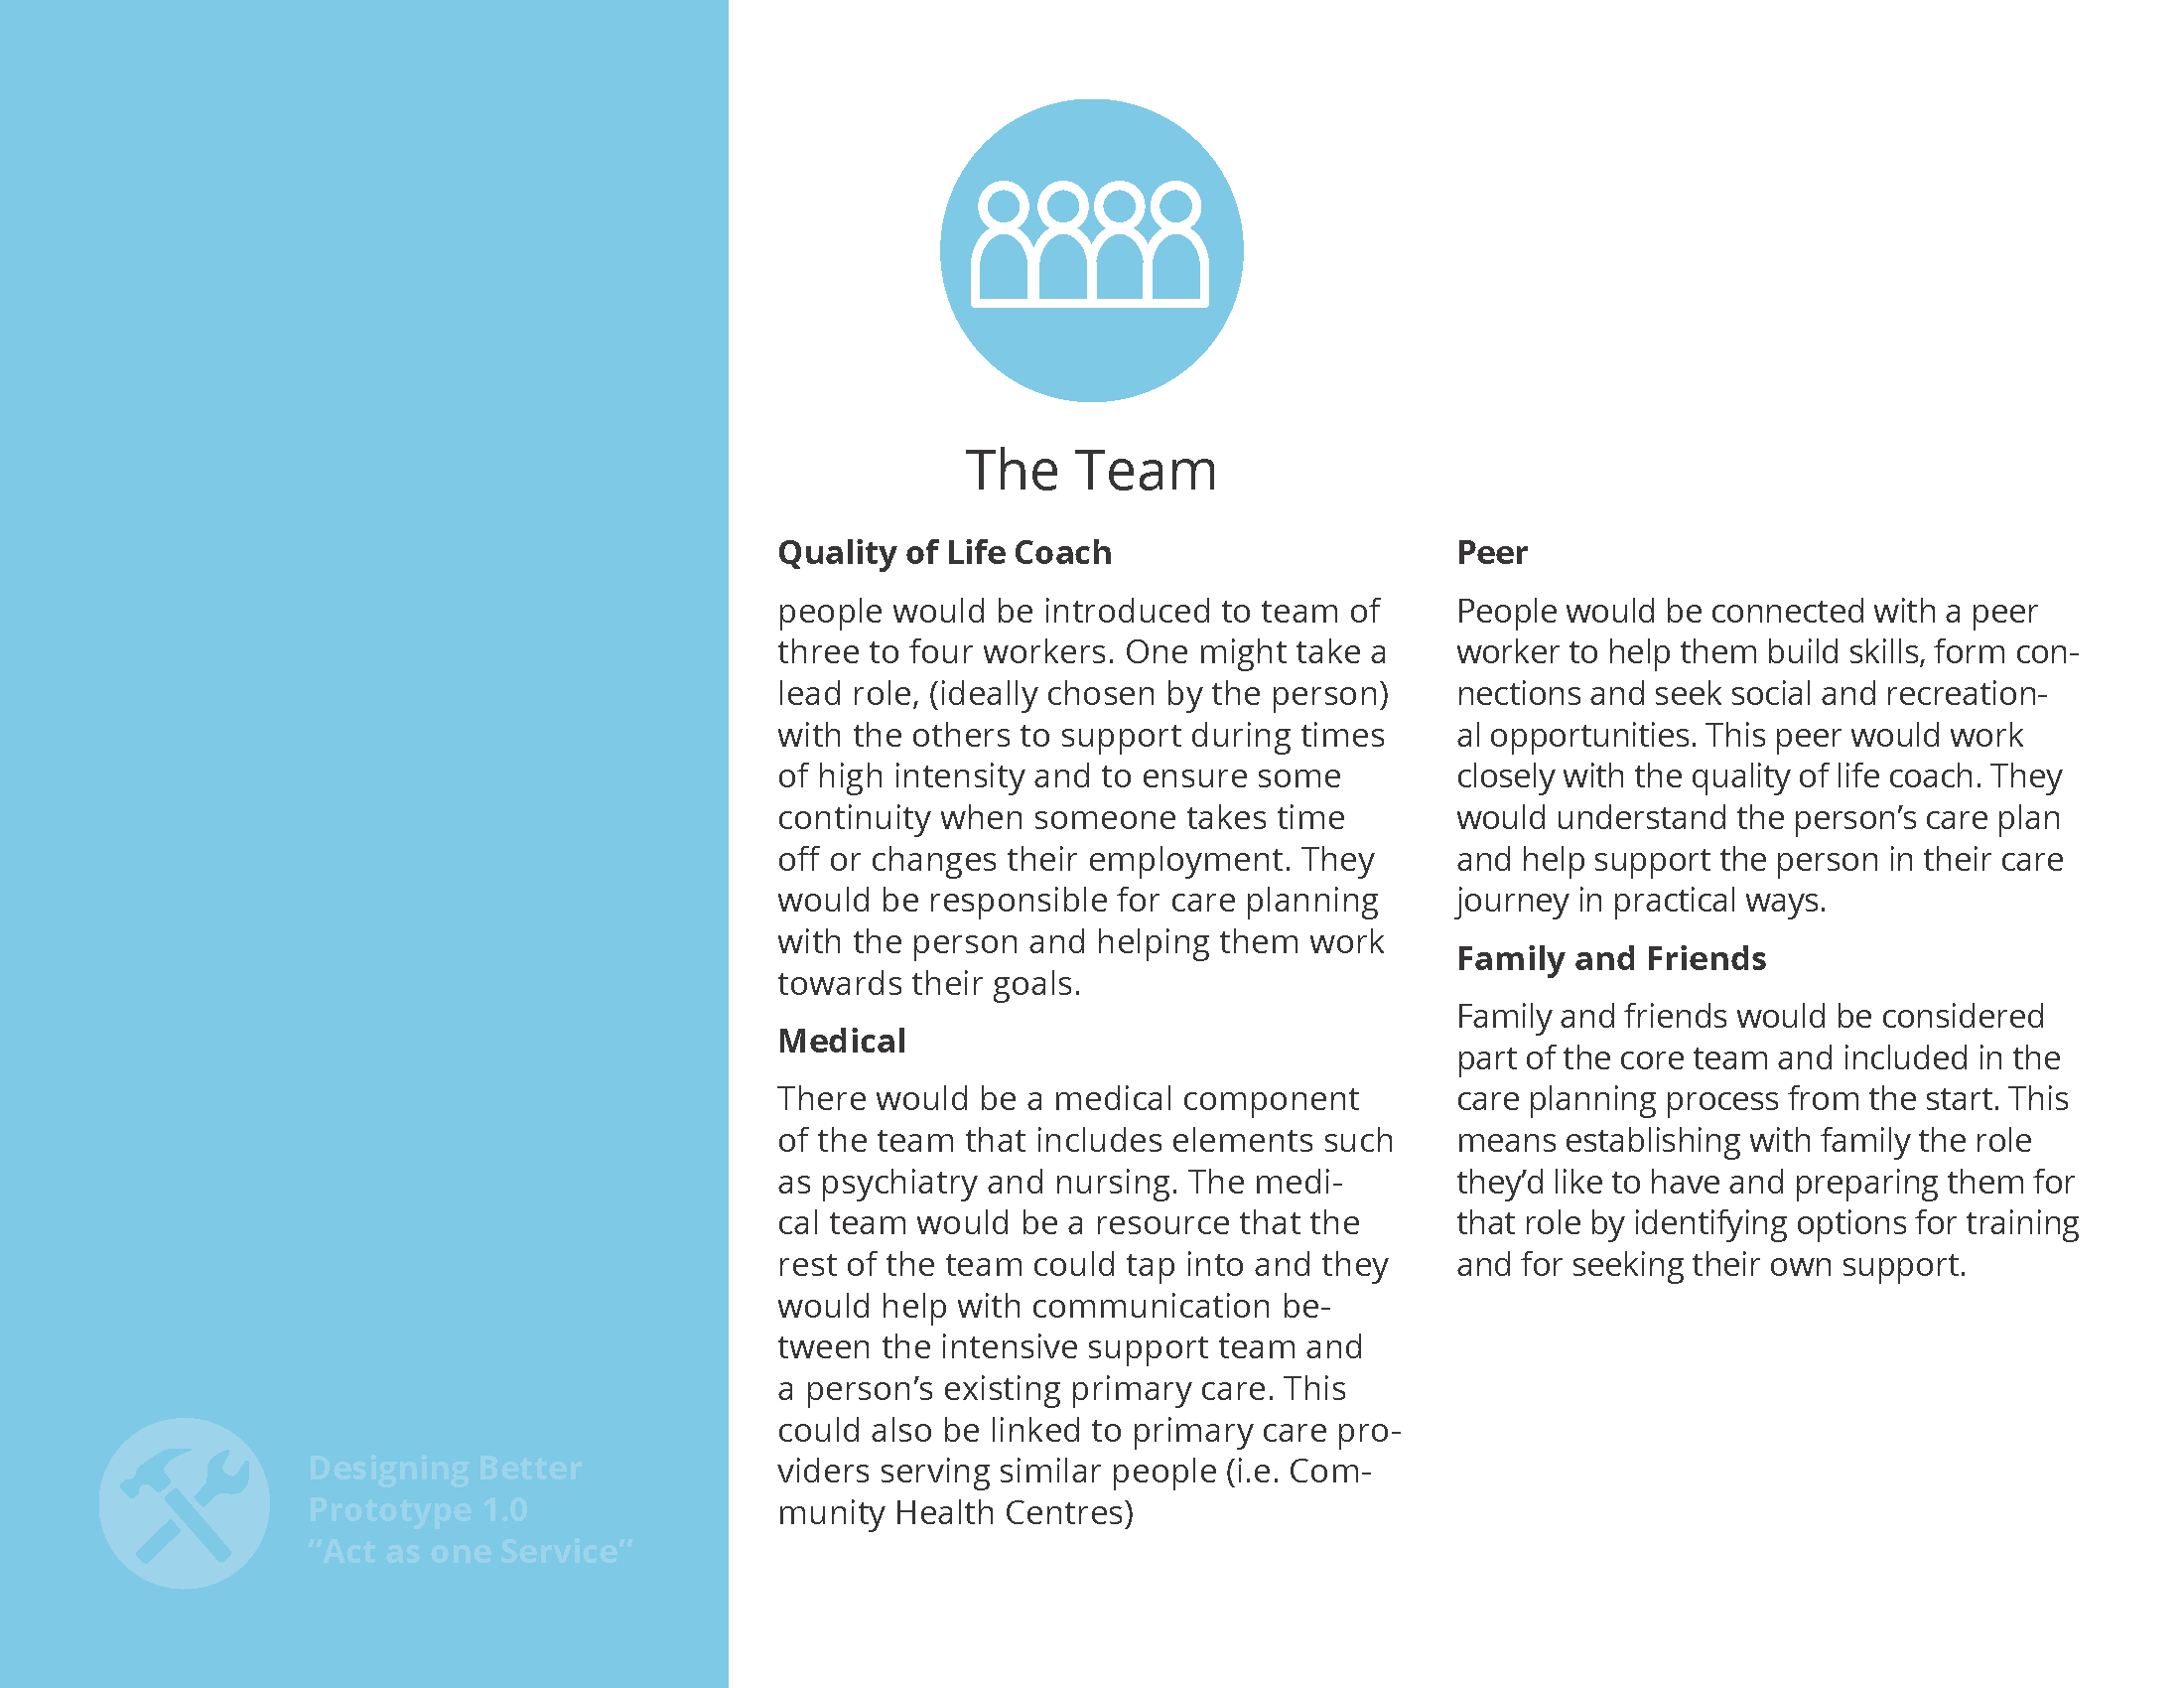 Act As One Service-Prototype v1.1_Page_2.png